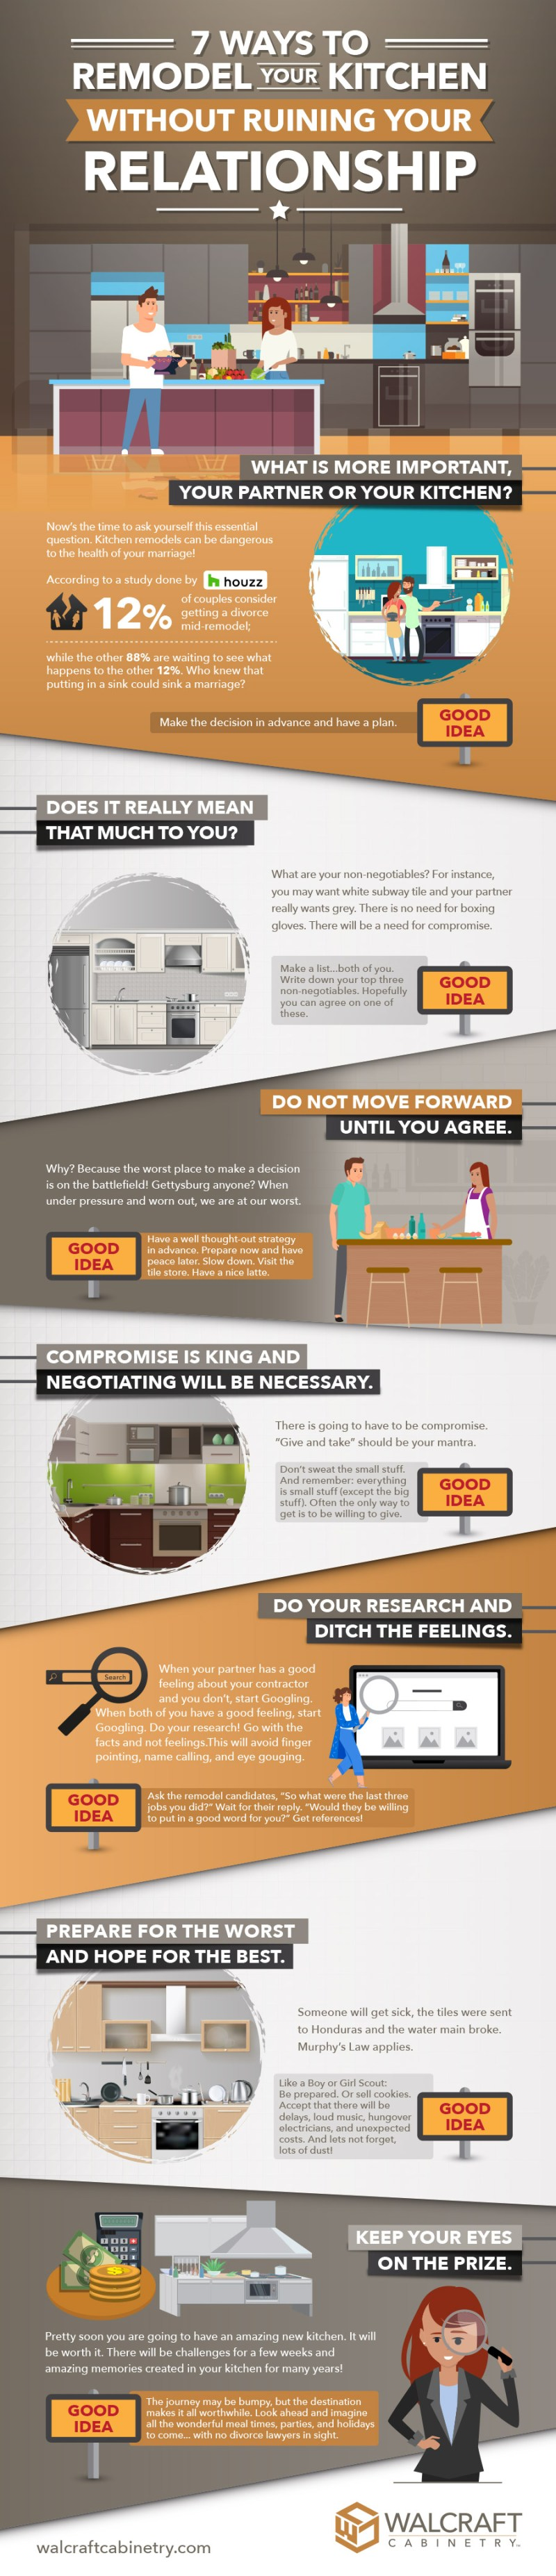 7 Ways to Remodel Your Kitchen Without Ruining Your Relationship — Infographic